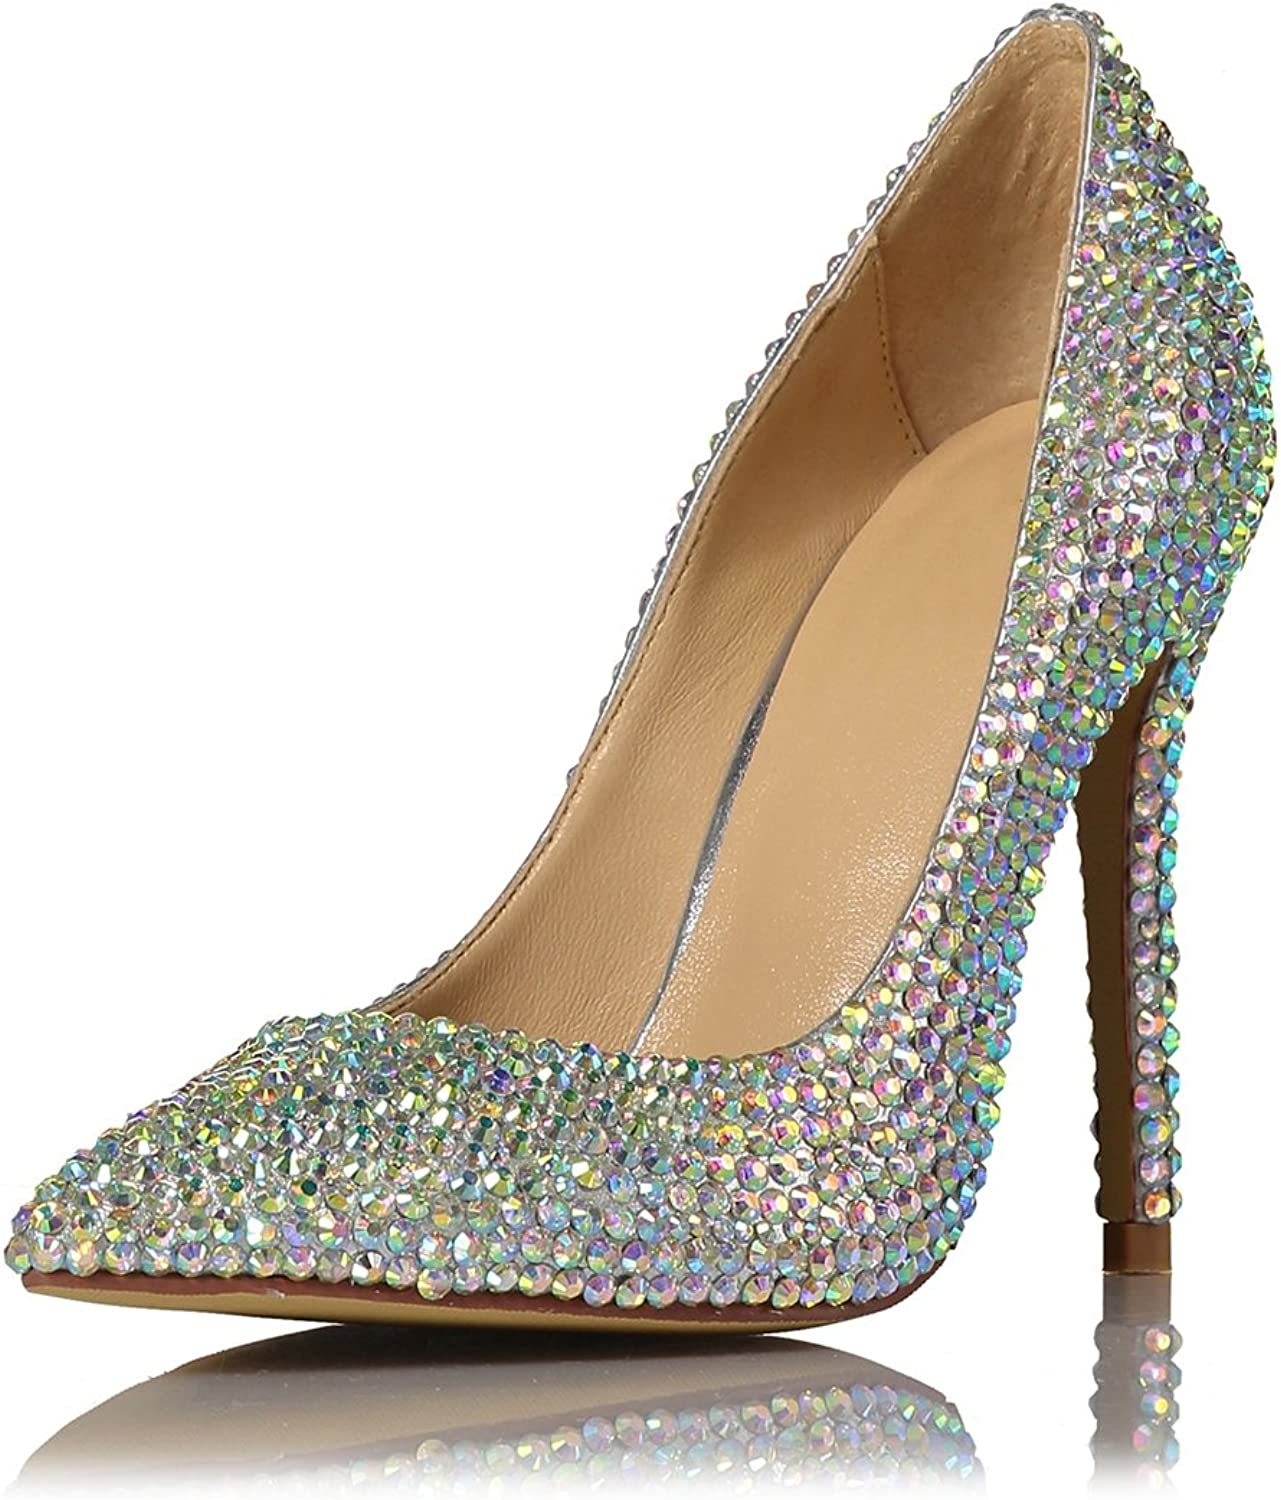 Miyoopark LS0652 Women's Sparkle Multicolor Crystals Studded Evening Wedding Pumps